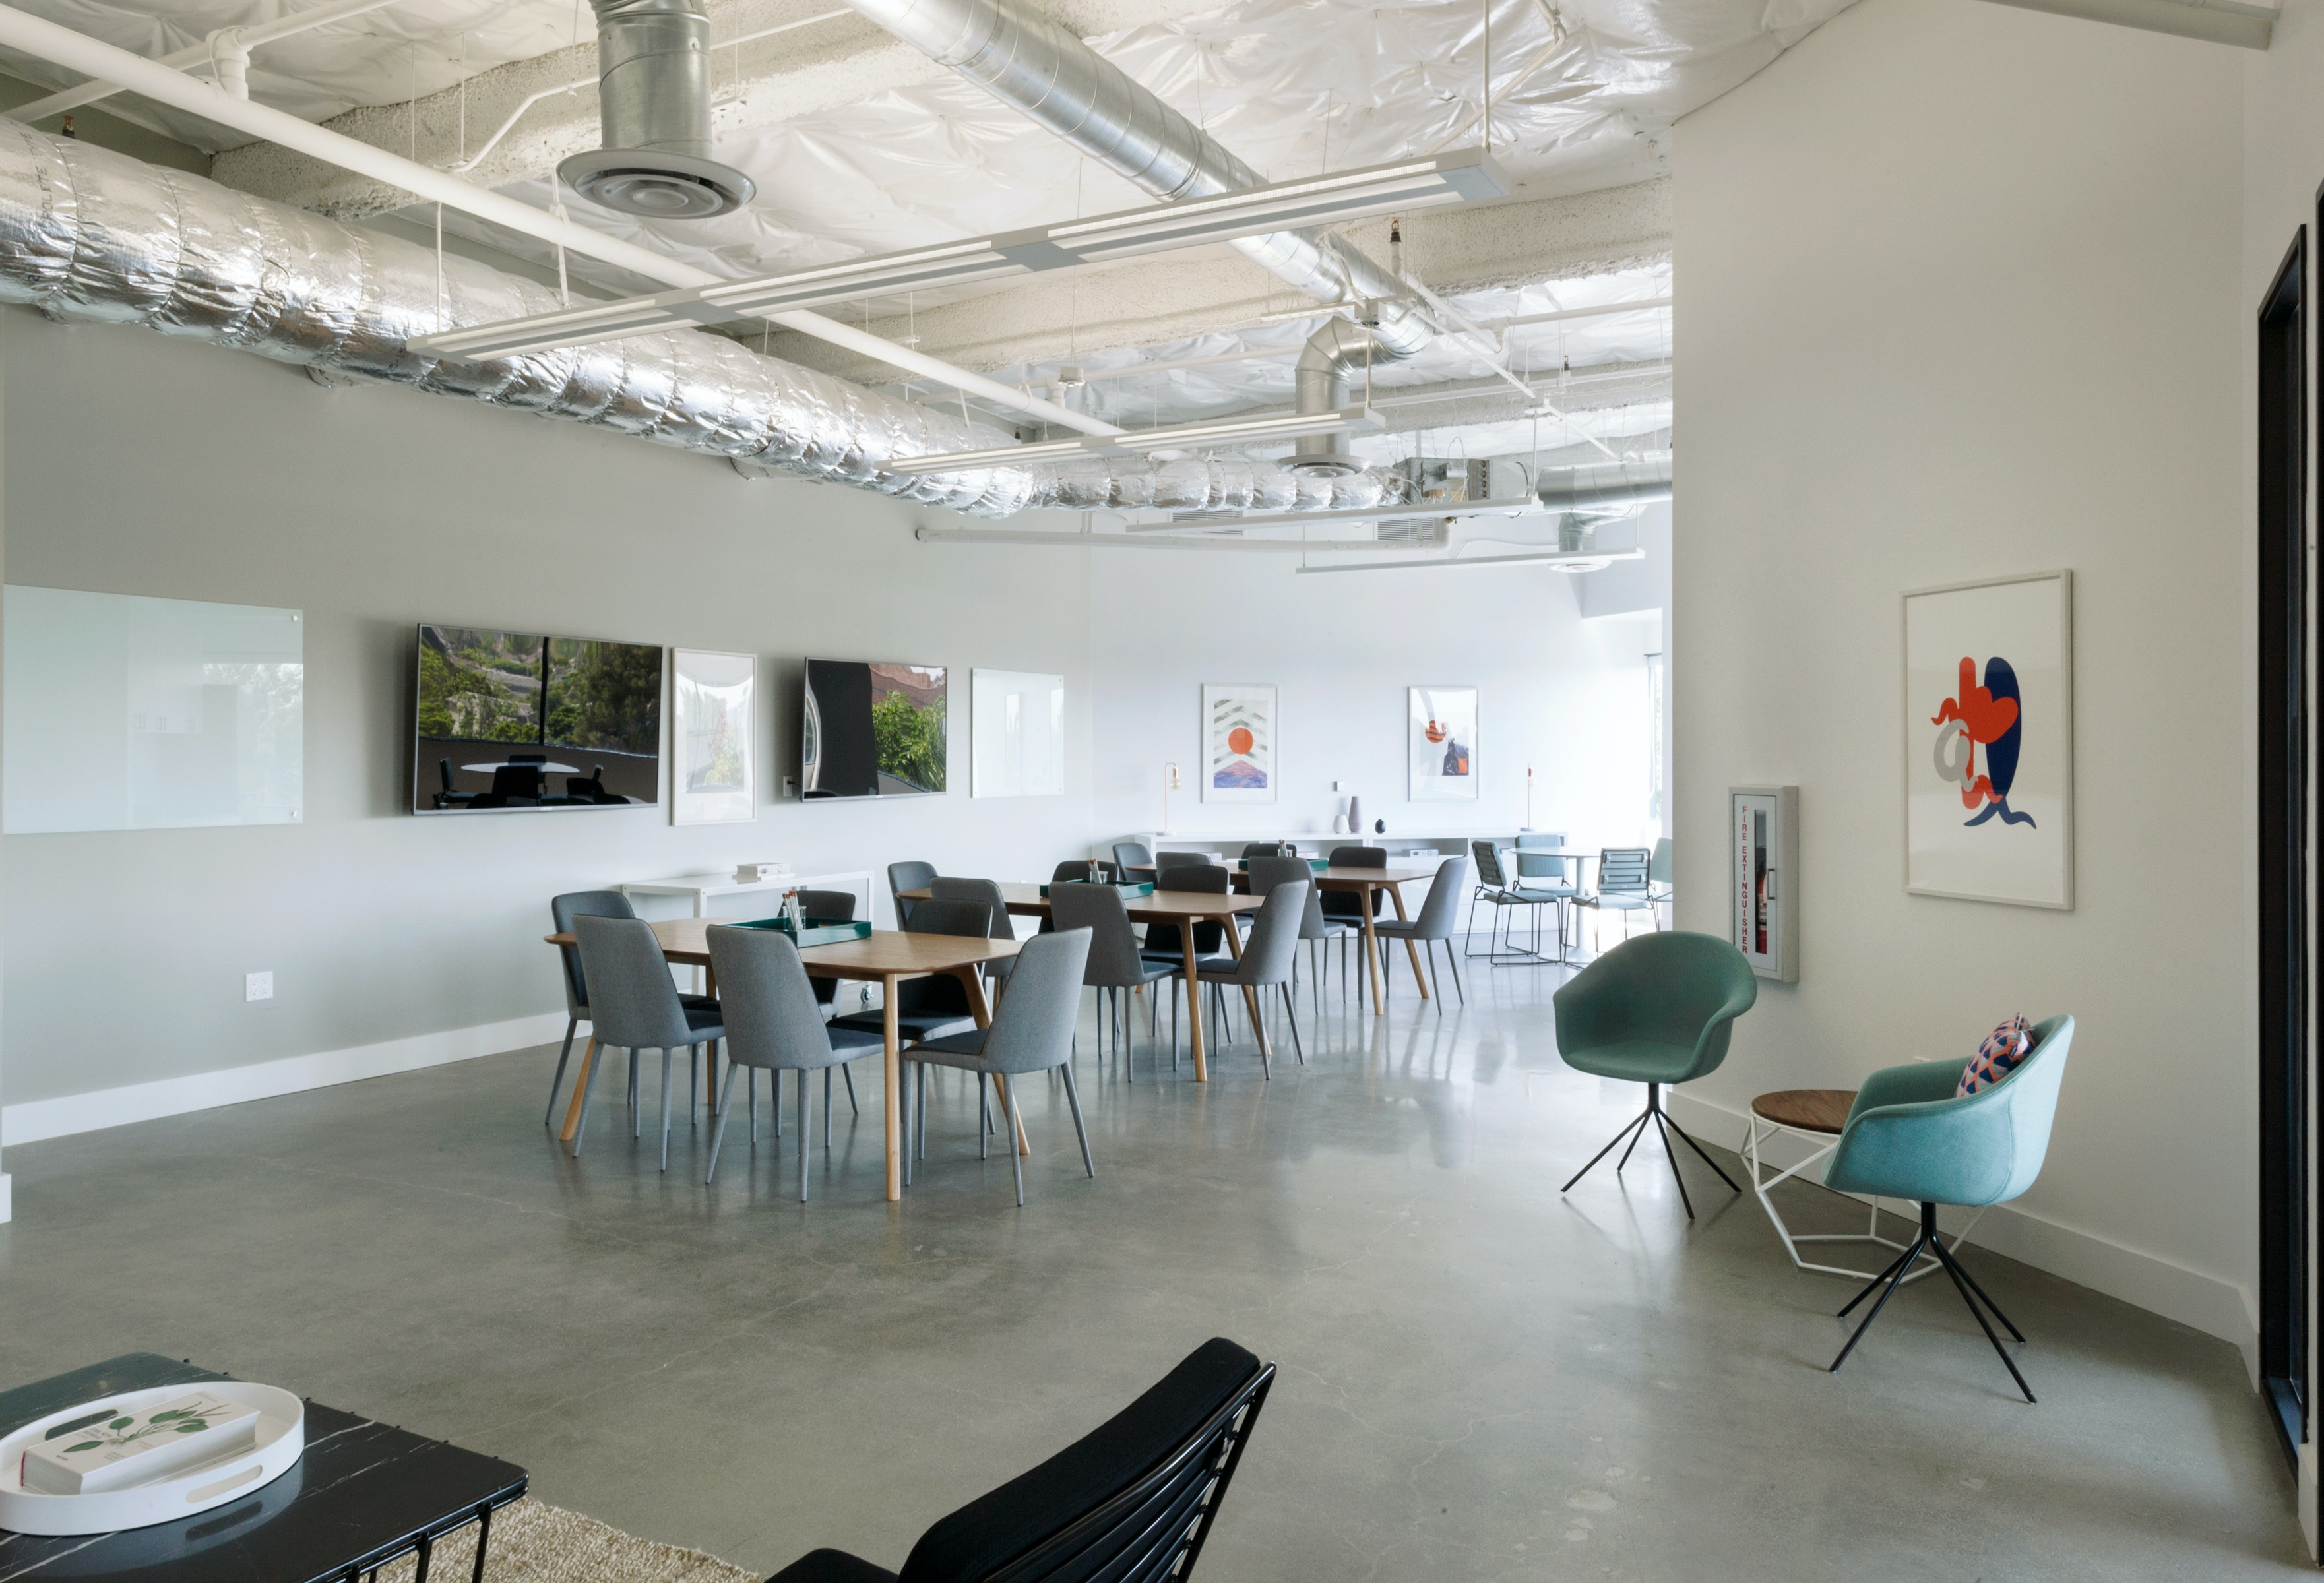 meetup space at 200 Corporate Pointe ,Los Angeles